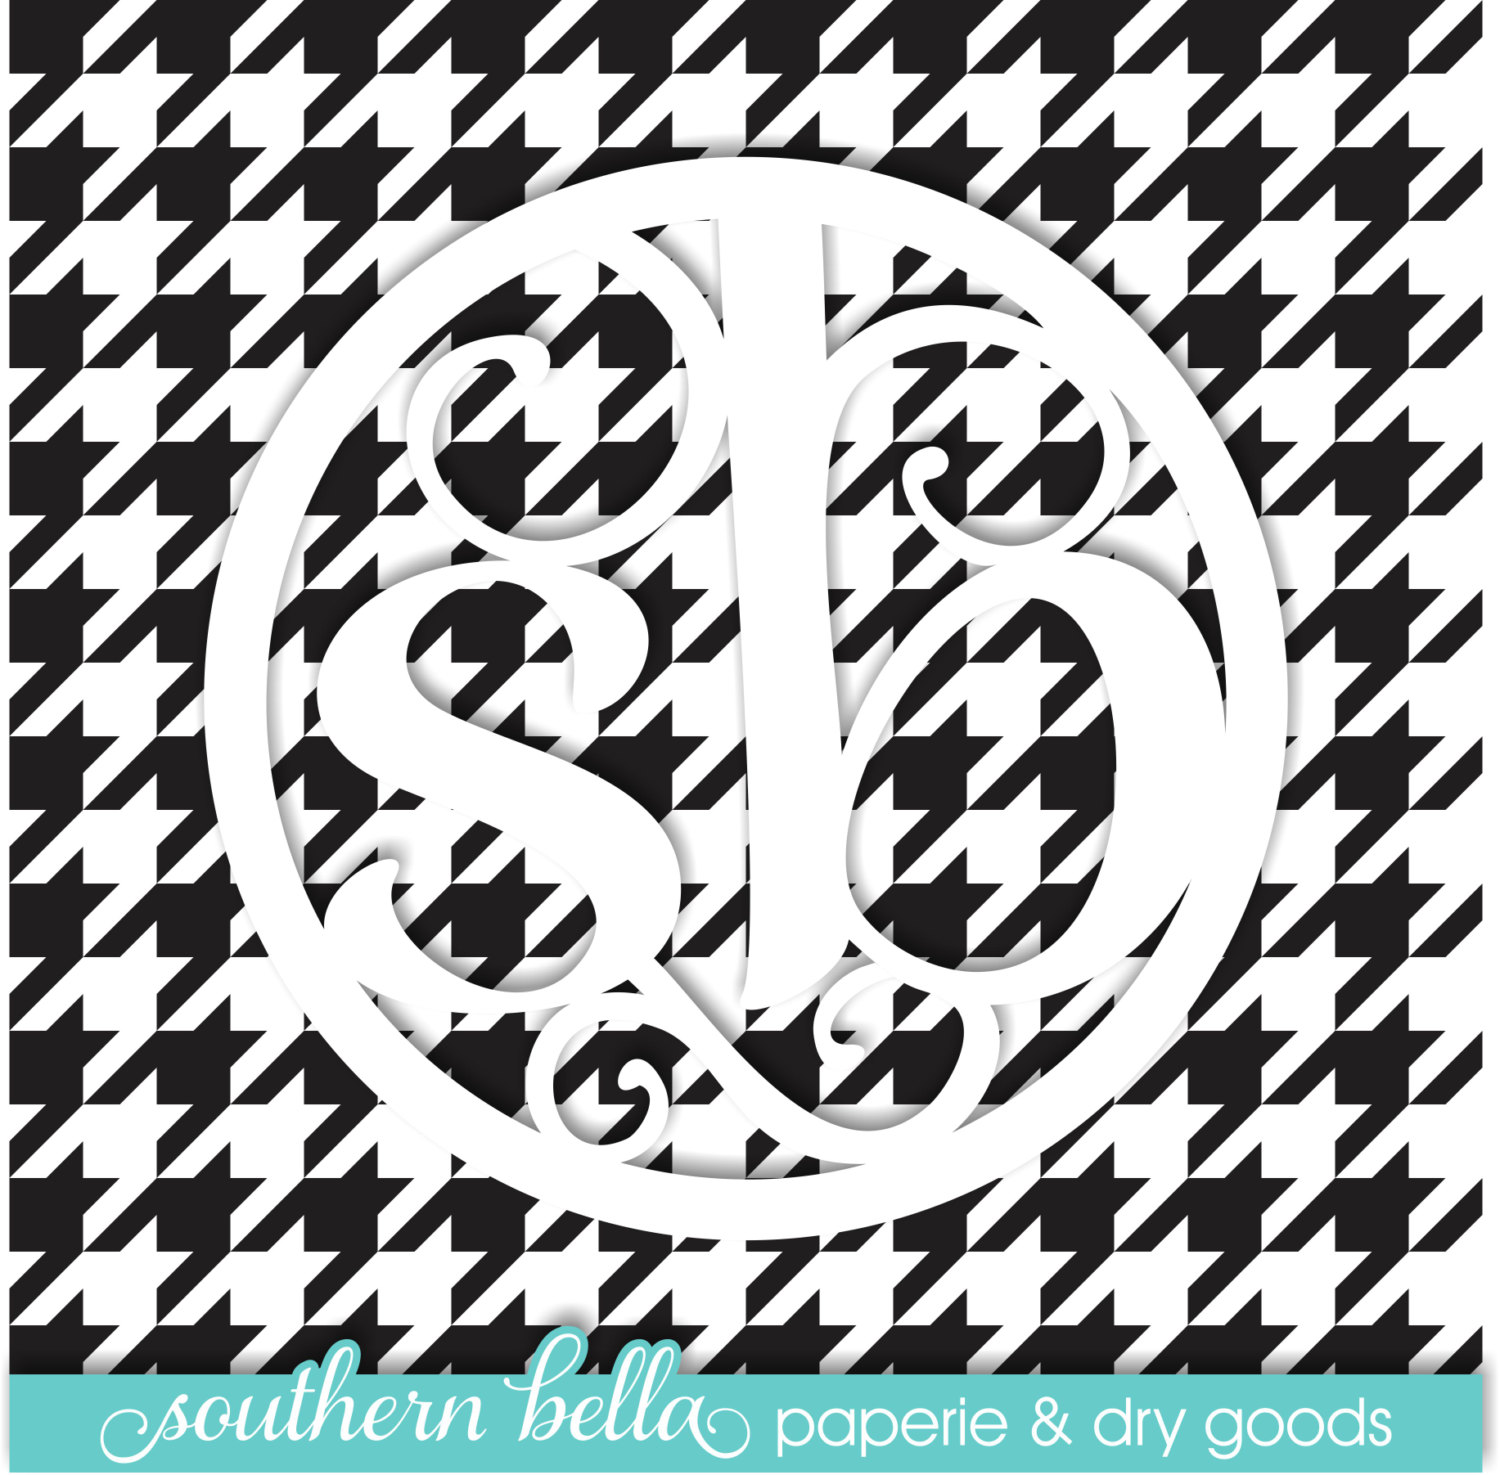 992720135c9a4c 12x12 Patterned Vinyl Sheet   Hounds Tooth Houndstooth Vinyl Sheets   HTV    Outdoor or HTV